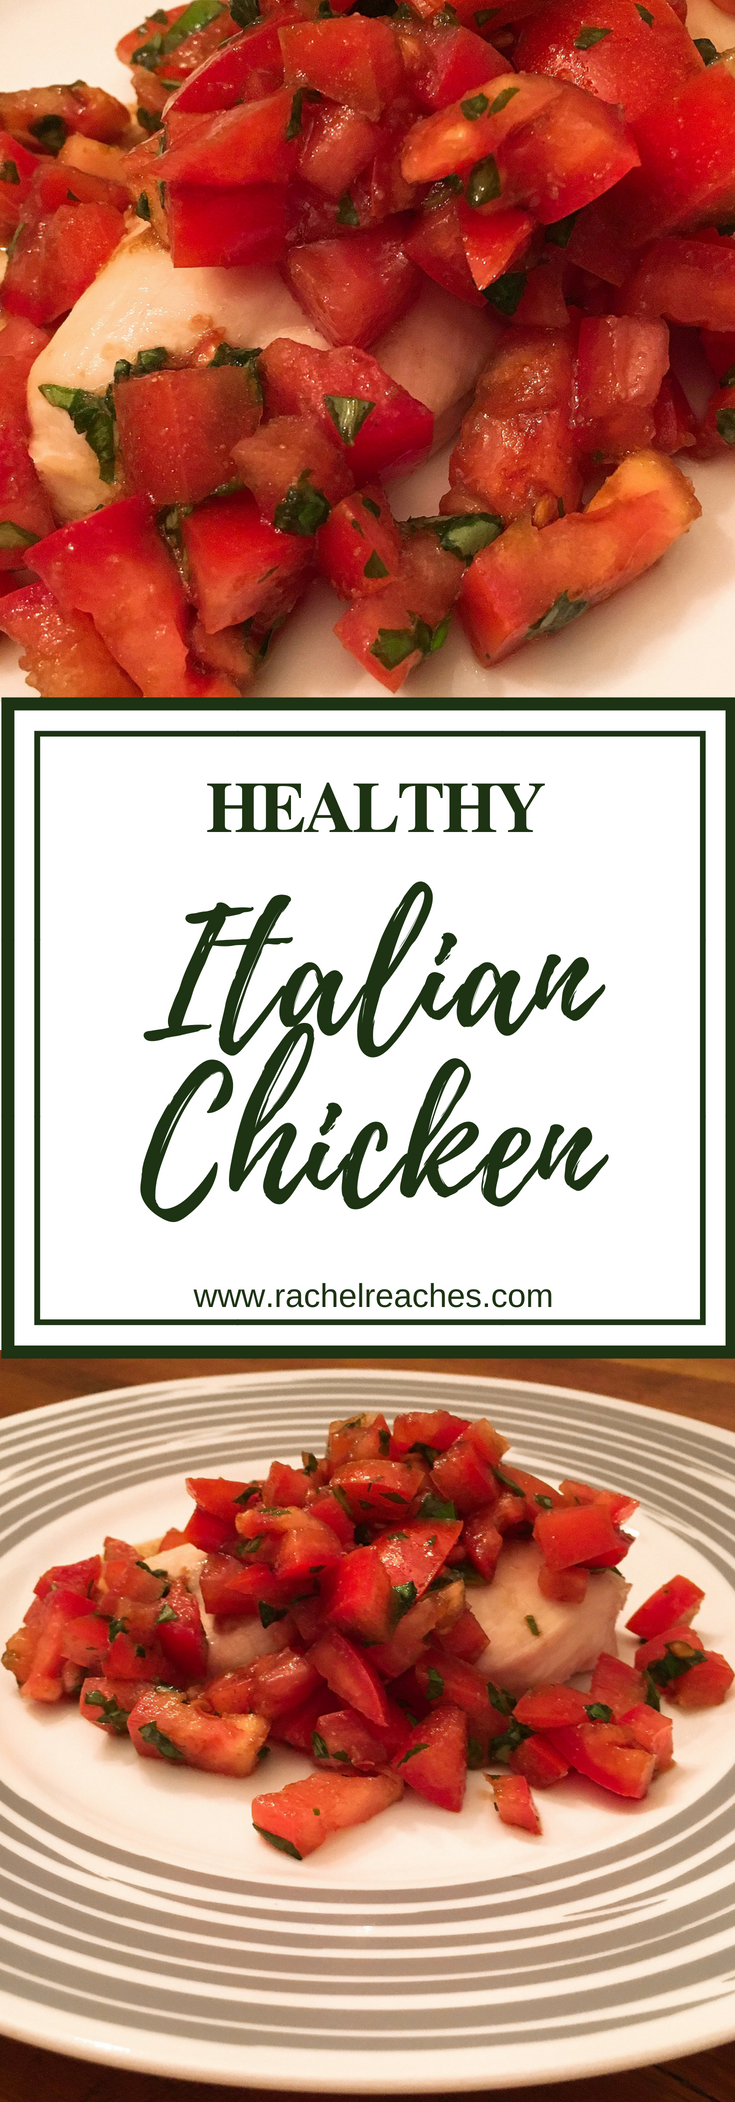 Italian Chicken Pin - Healthy Recipes.png